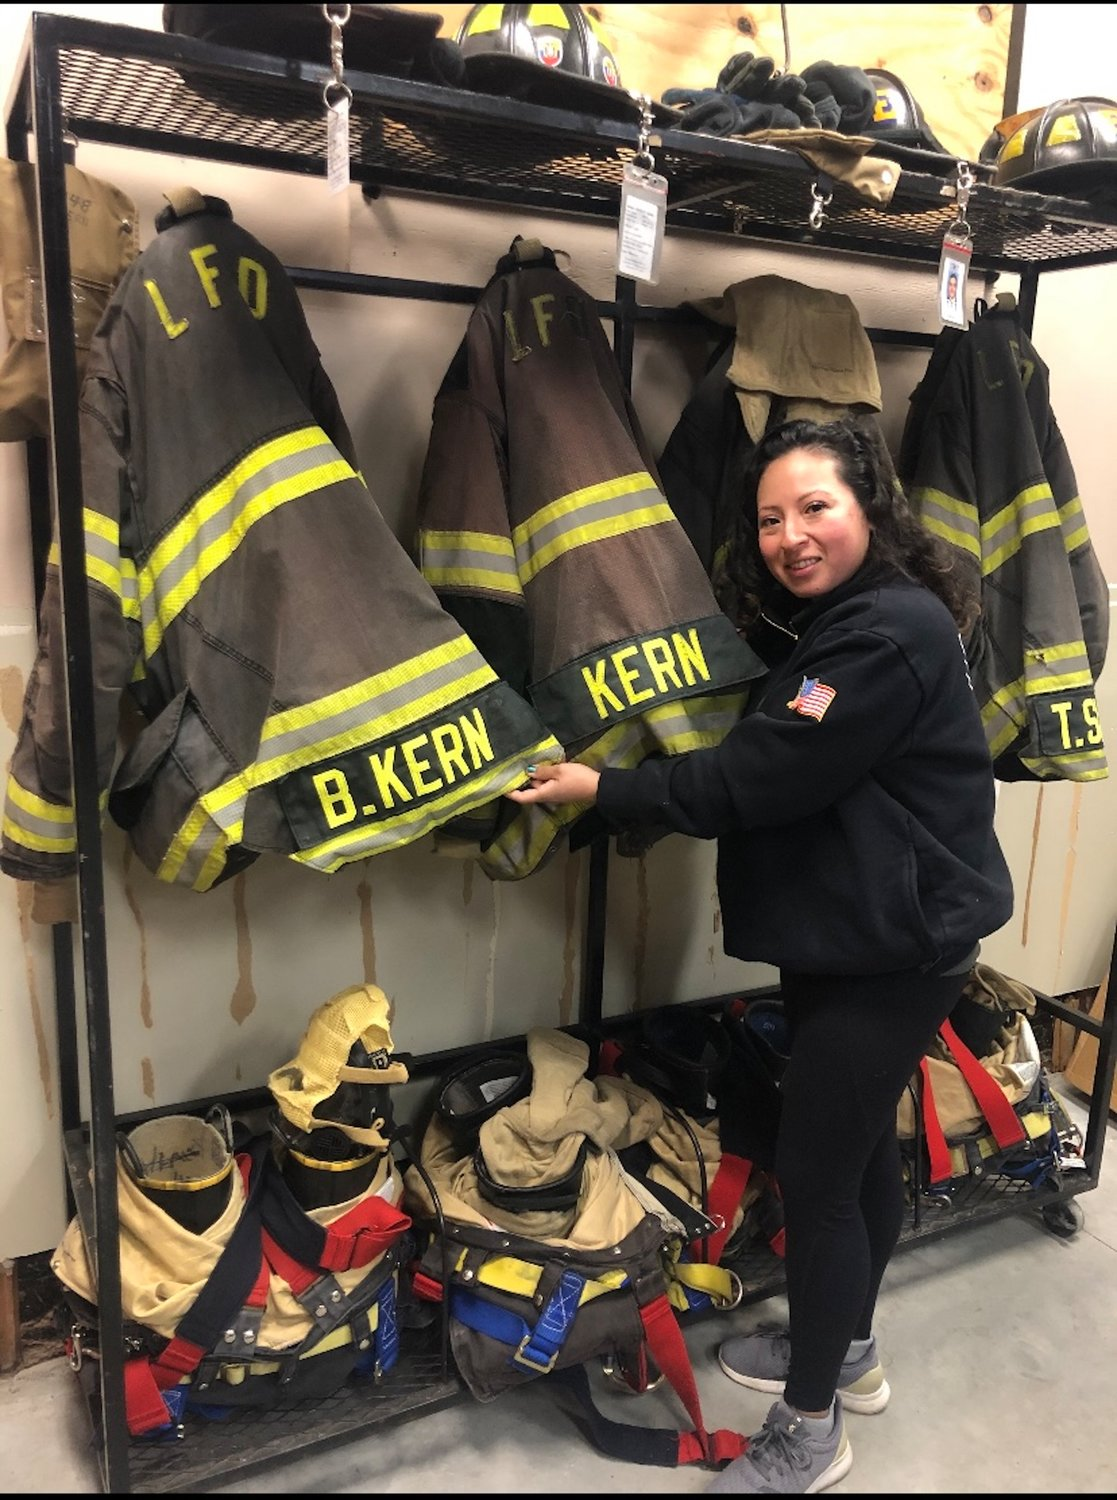 Kern with the coats that she and her husband, Brian Kern, another village firefighter, have hung up at the firehouse.